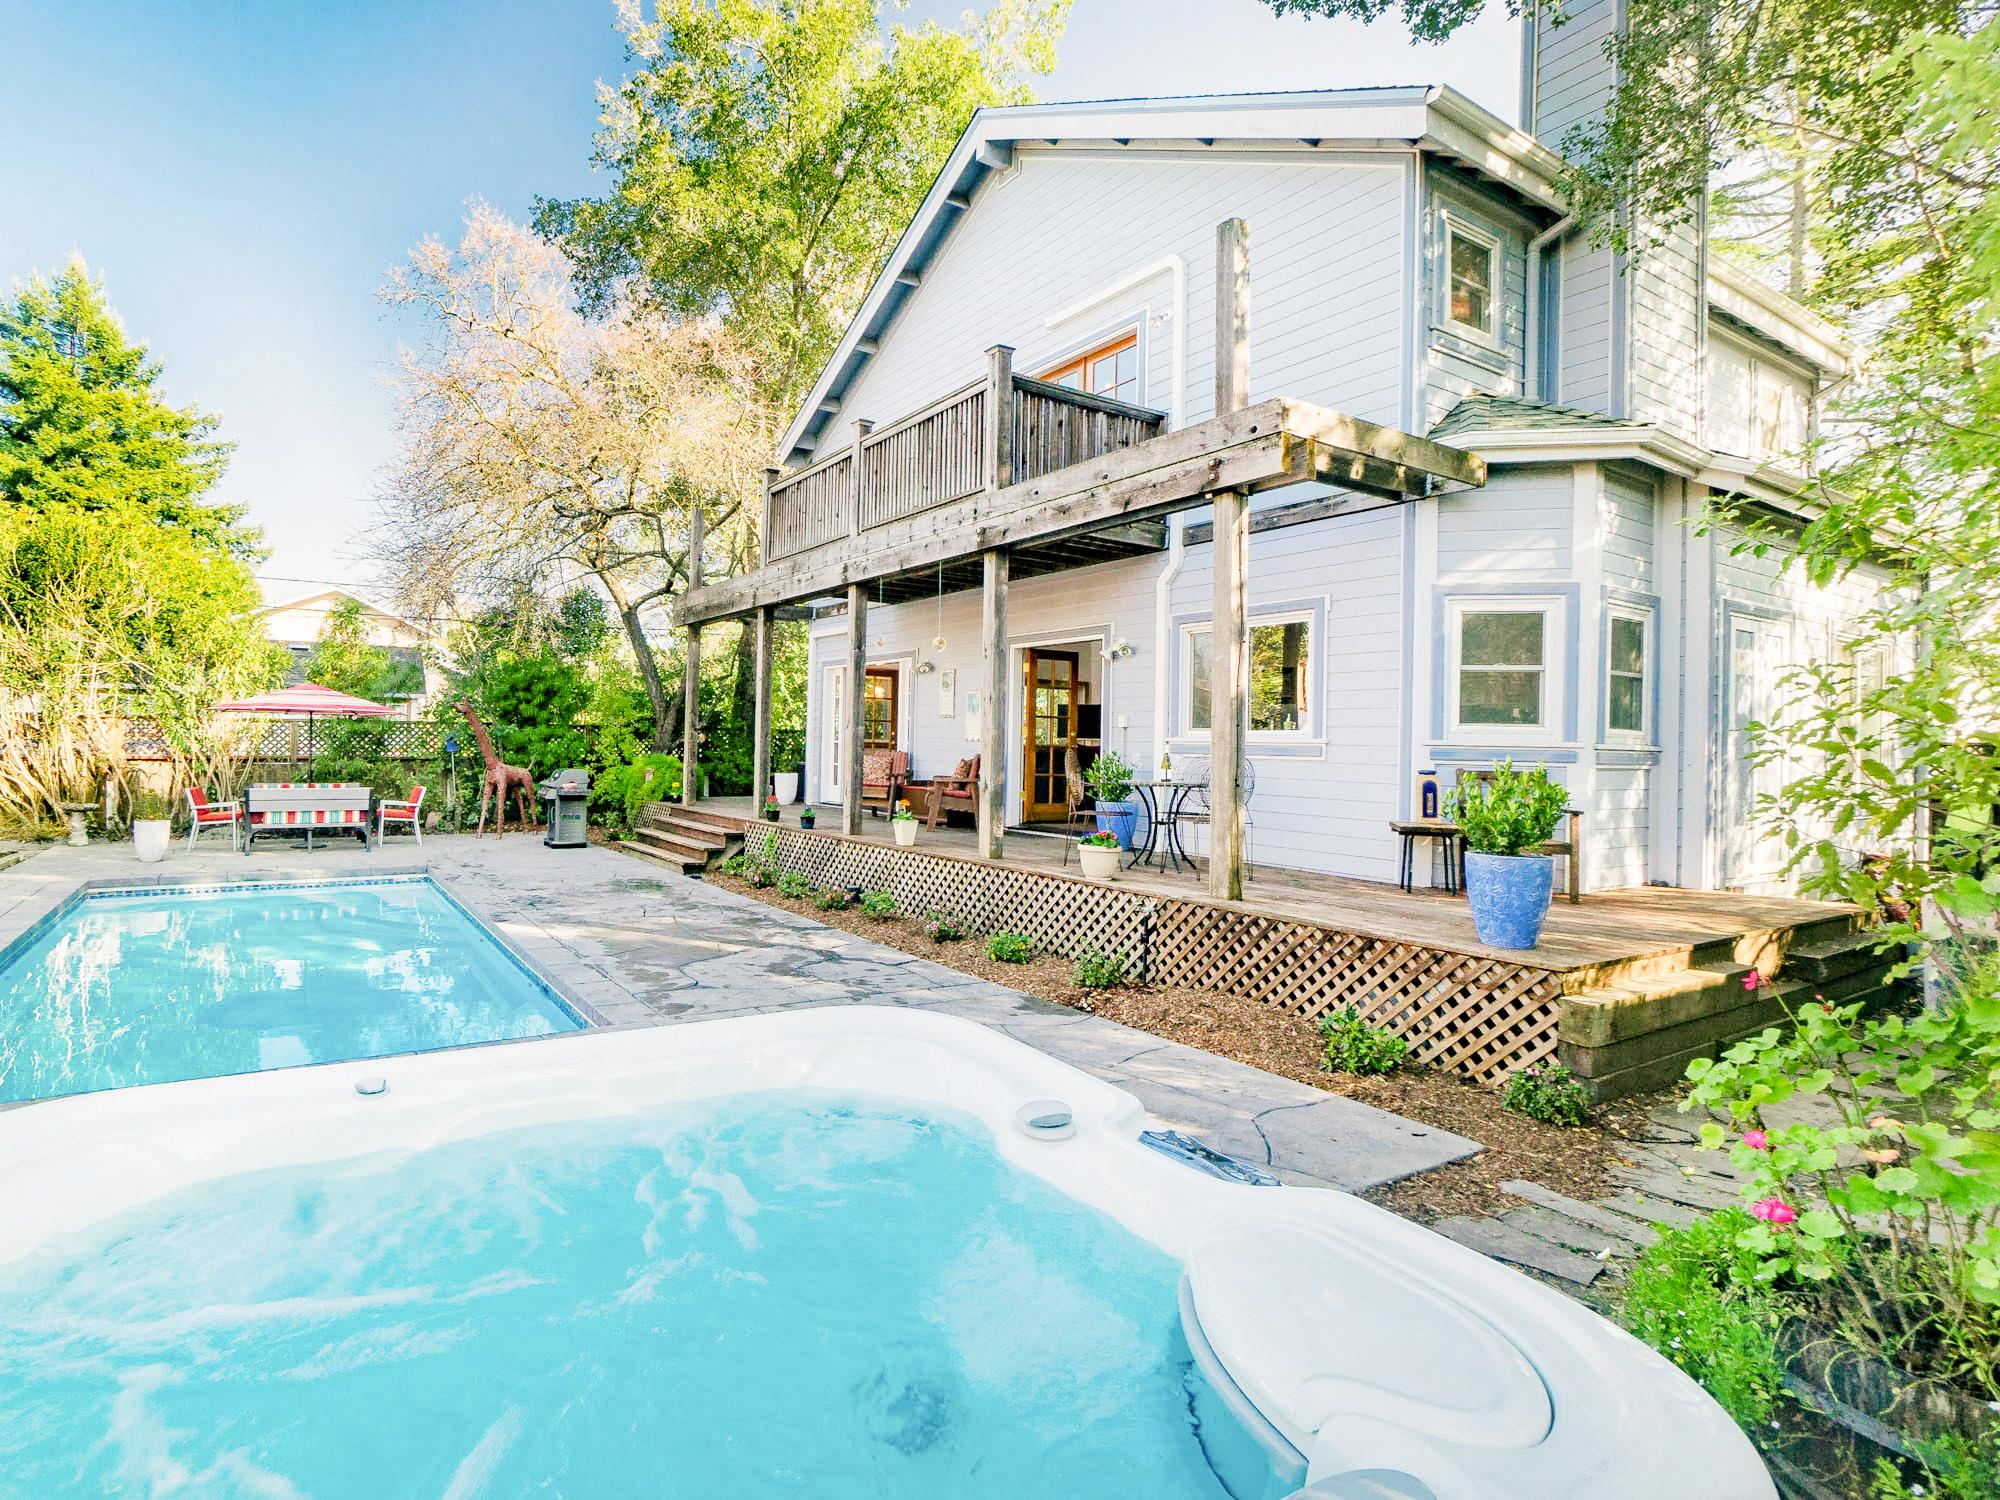 Welcome to Sonoma! Your charming home is professionally managed and maintained by TurnKey Vacation Rentals.